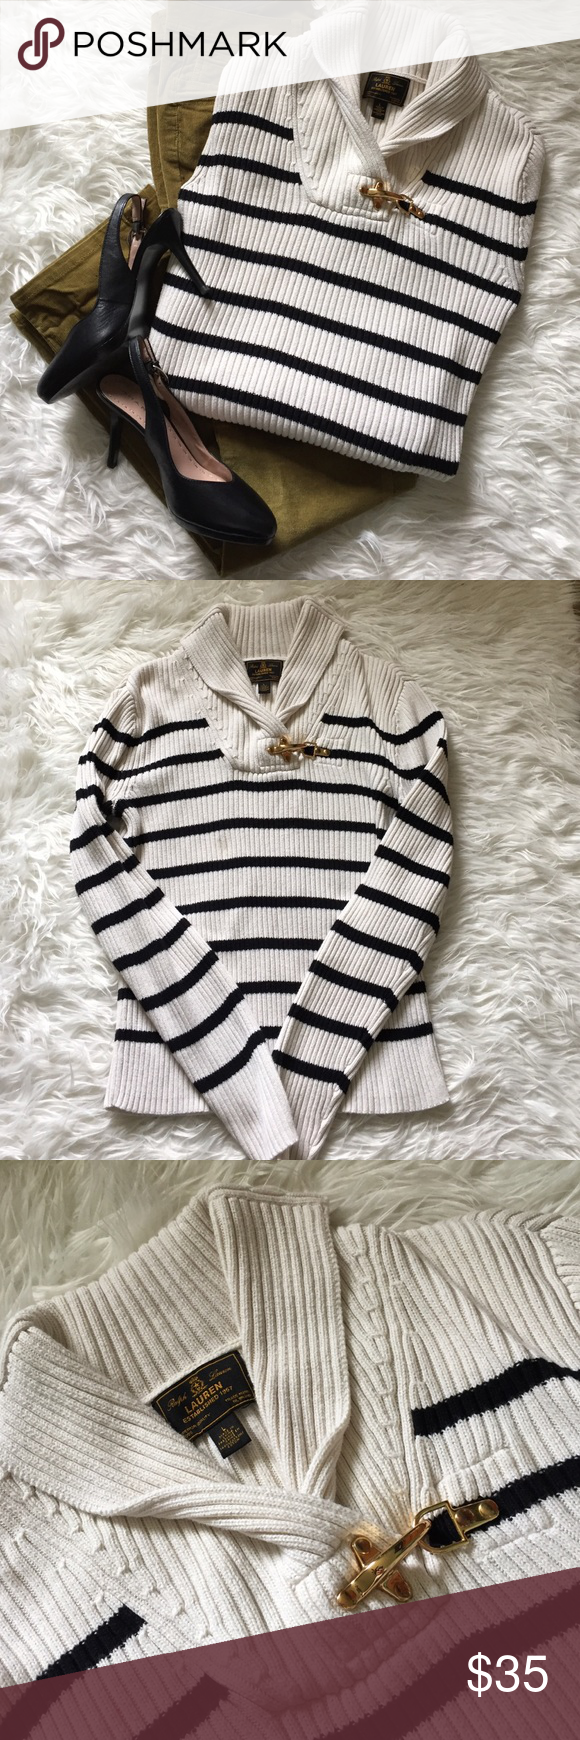 Ralph Lauren Black Label Sweater Large Black cream Super nice RL Lauren Black Label black and cream striped women's large sweater. Gold hook at collar, ribbed, and has some stretch to it. Smoke free pet free home! Ralph Lauren Black Label Sweaters Crew & Scoop Necks